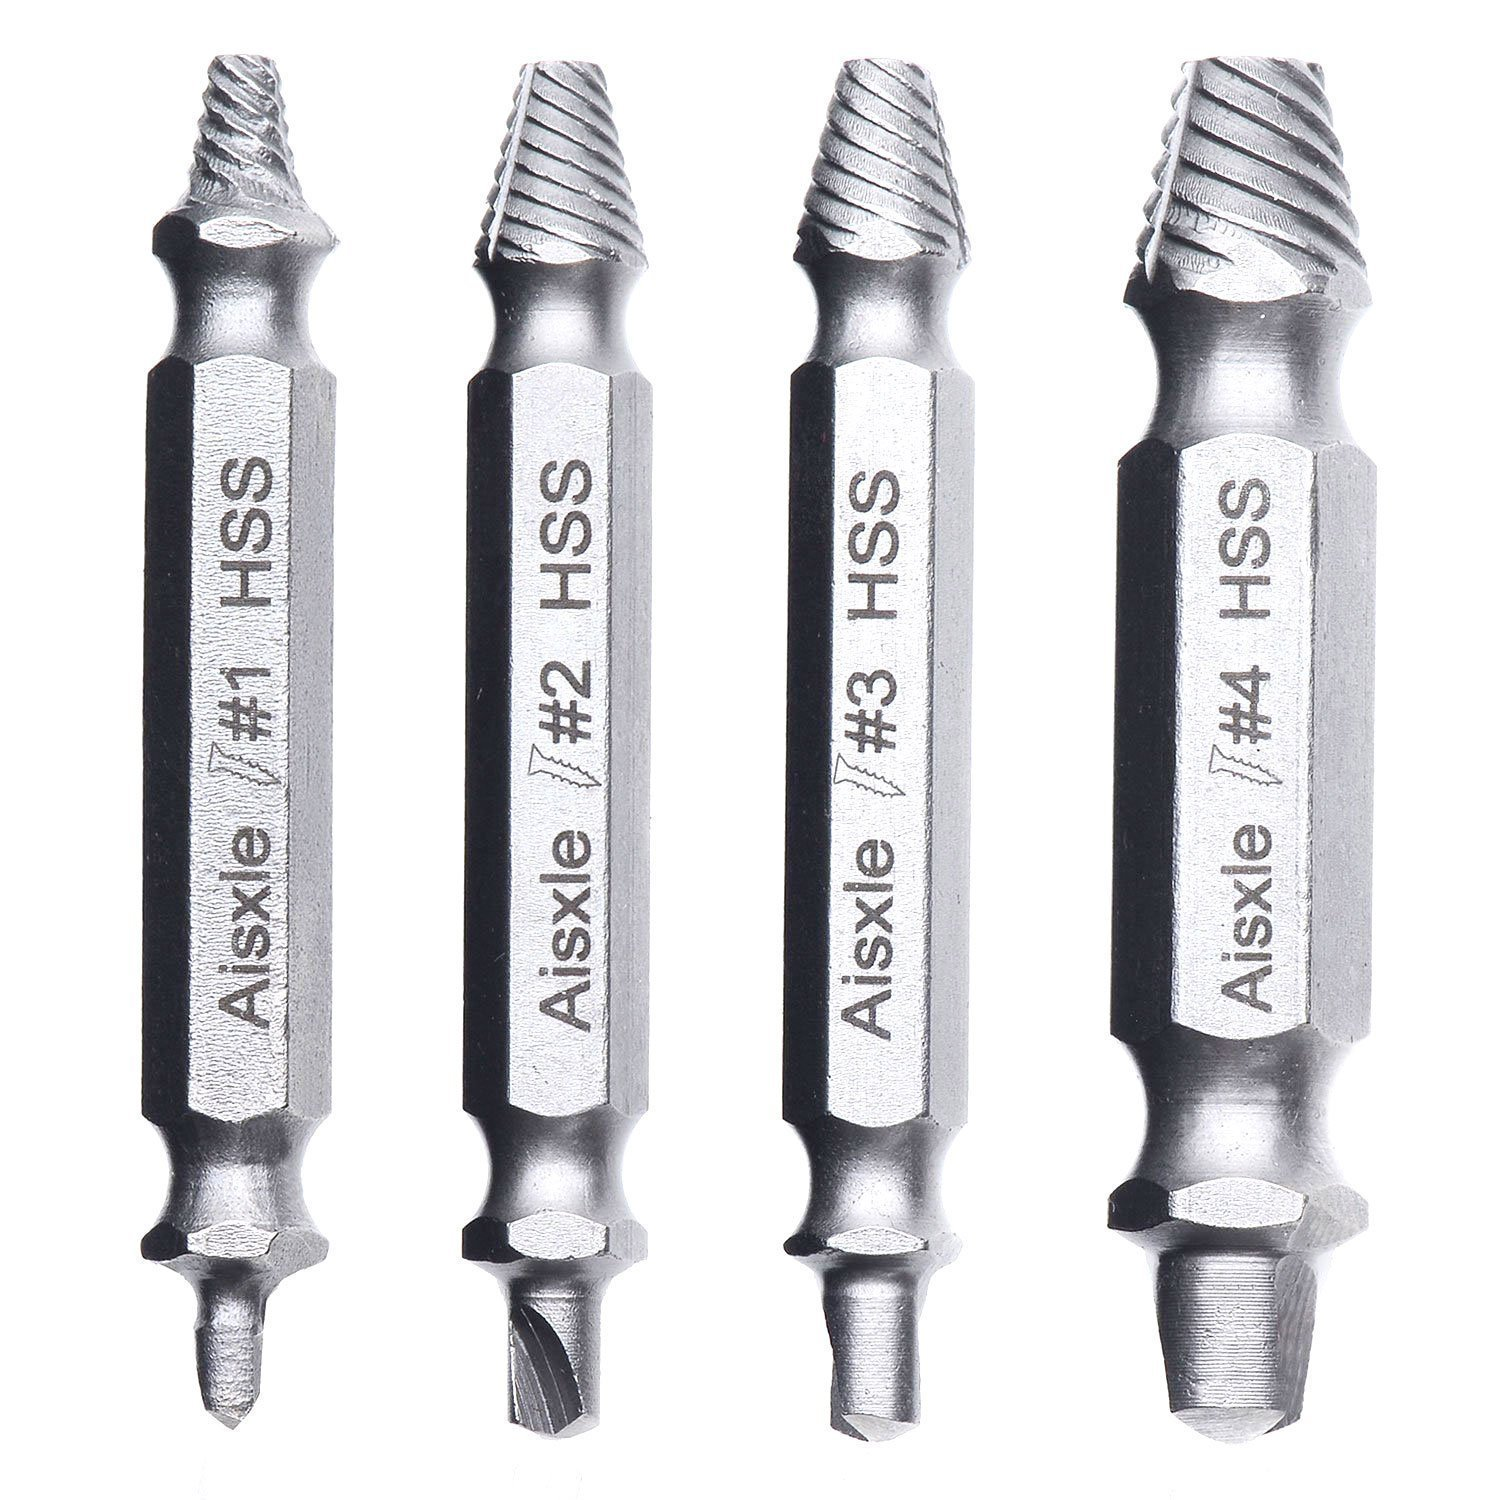 screw extractor for laptop. damaged screw extractor and remover set by aisxle, easily remove stripped or screws. made from h.s.s. 4341#, the hardness is 62-63hrc, for laptop t